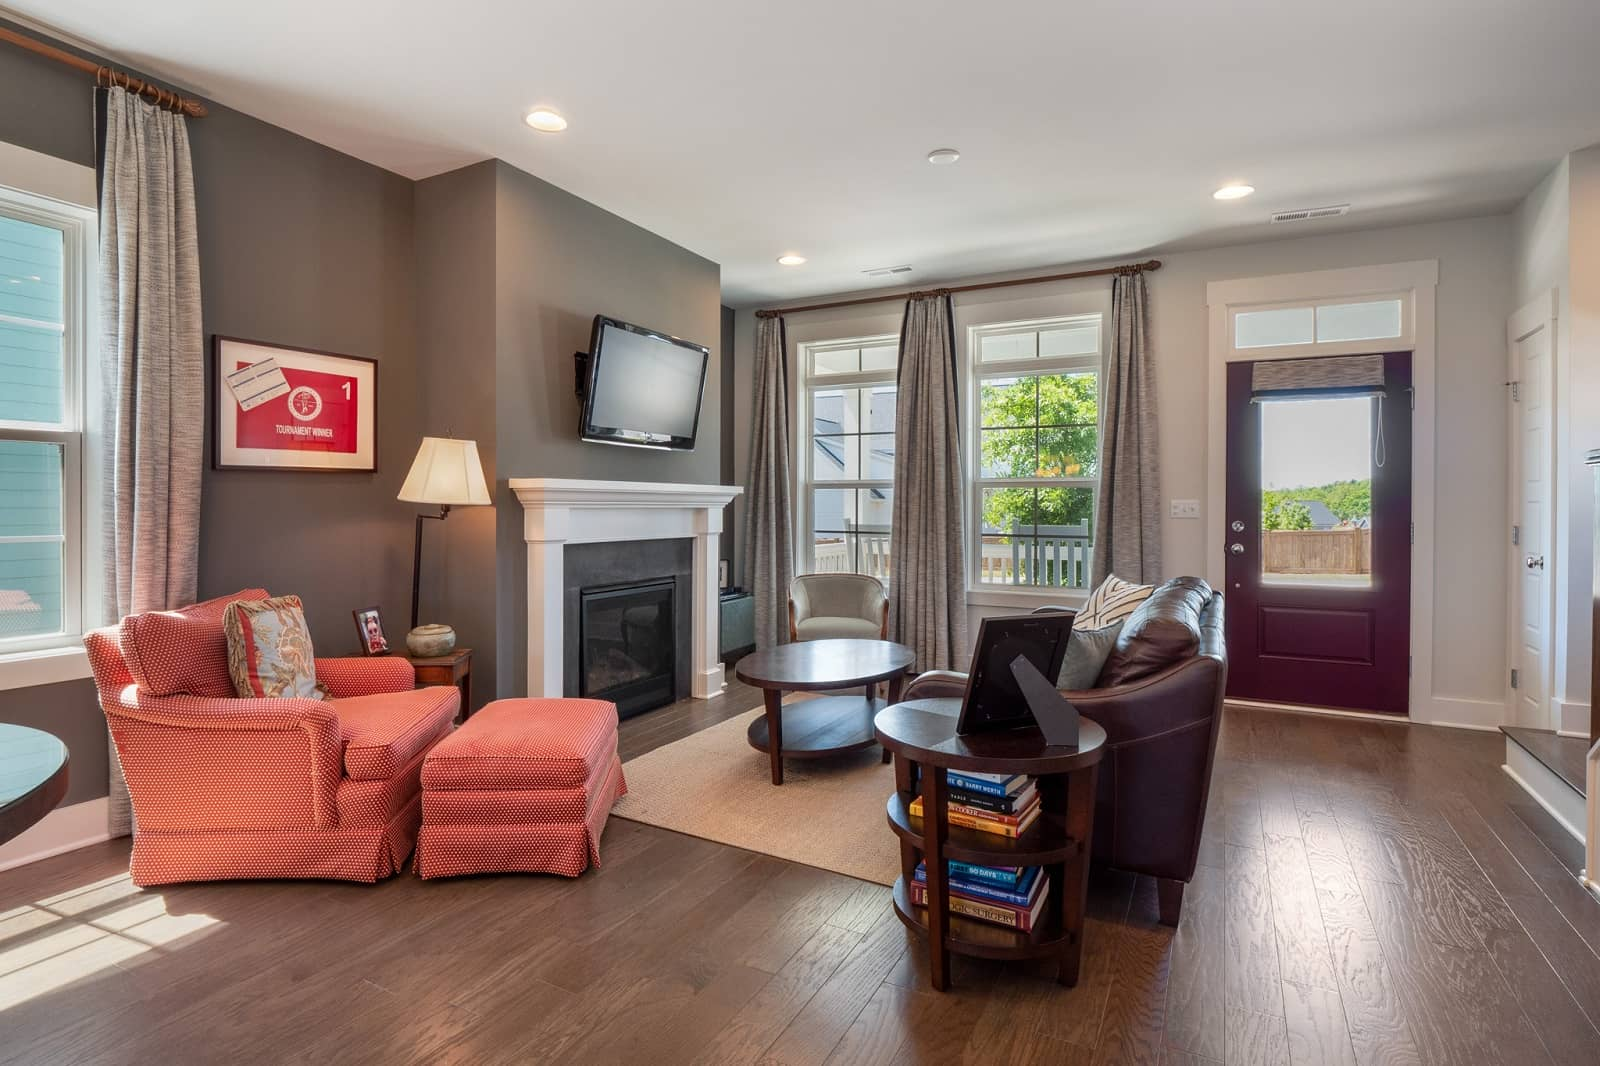 Real Estate Photography in Chapel Hill - NC - USA - Living Area View